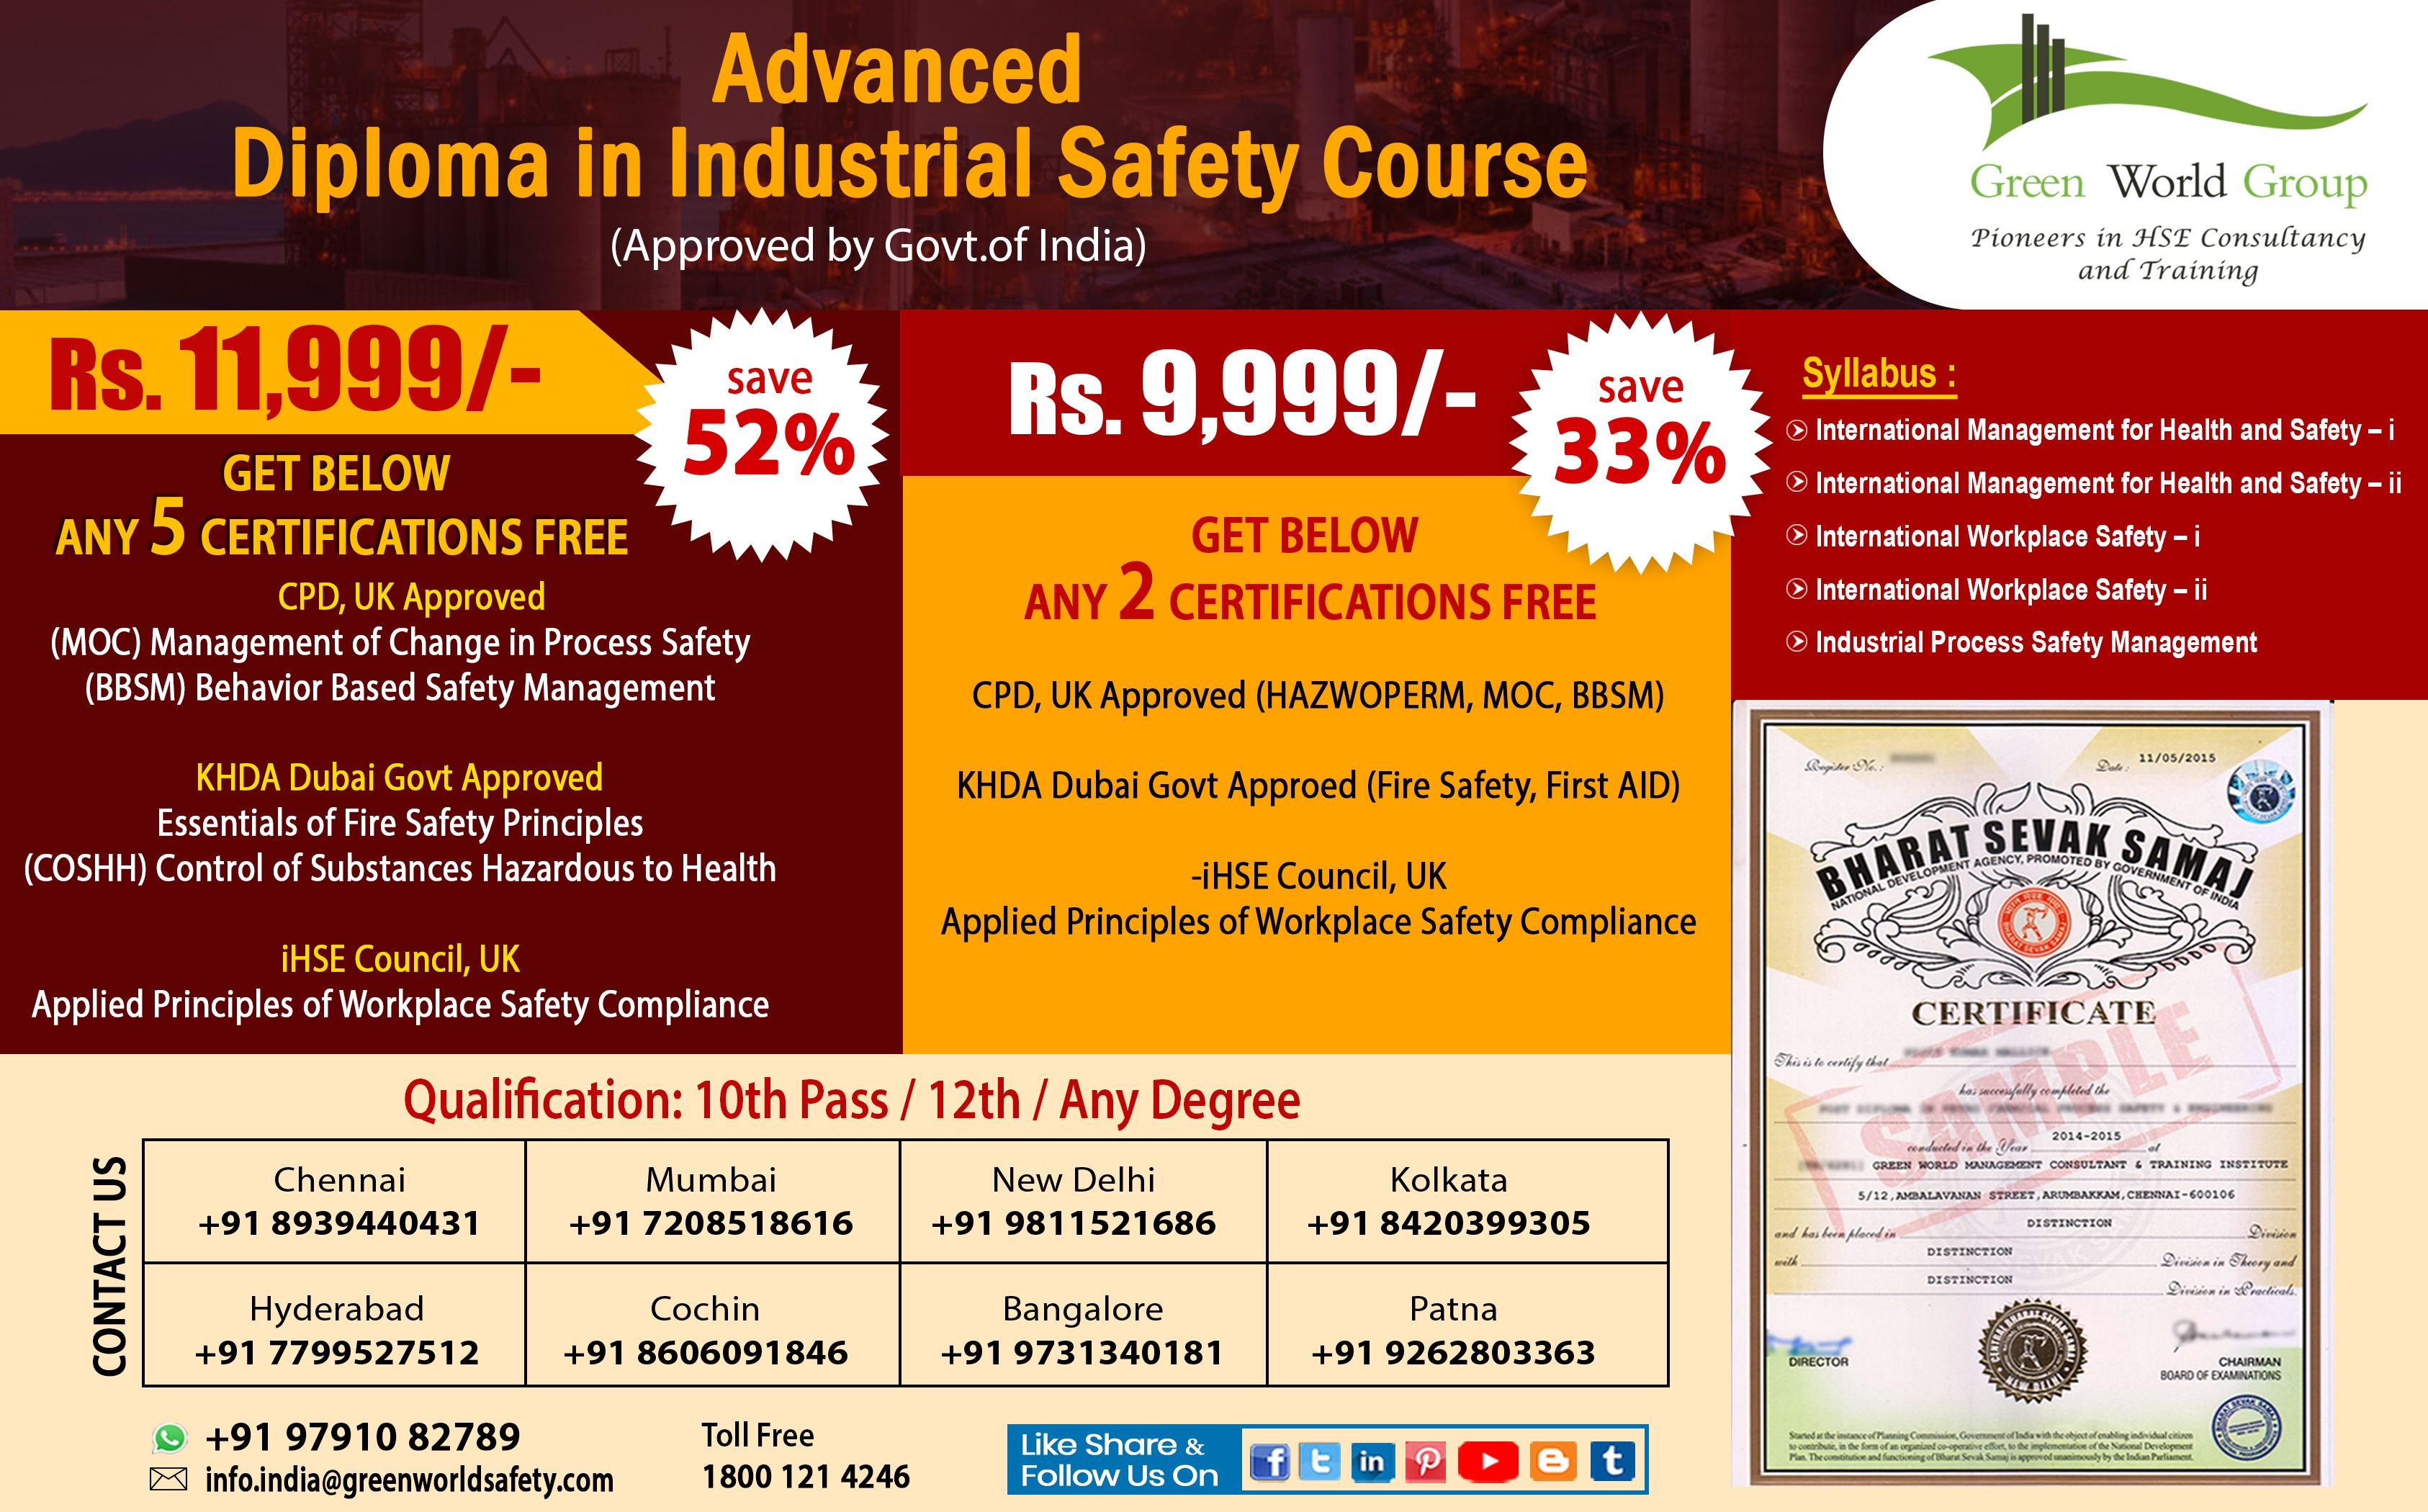 Advanced Diploma in Industrial Safety (With images